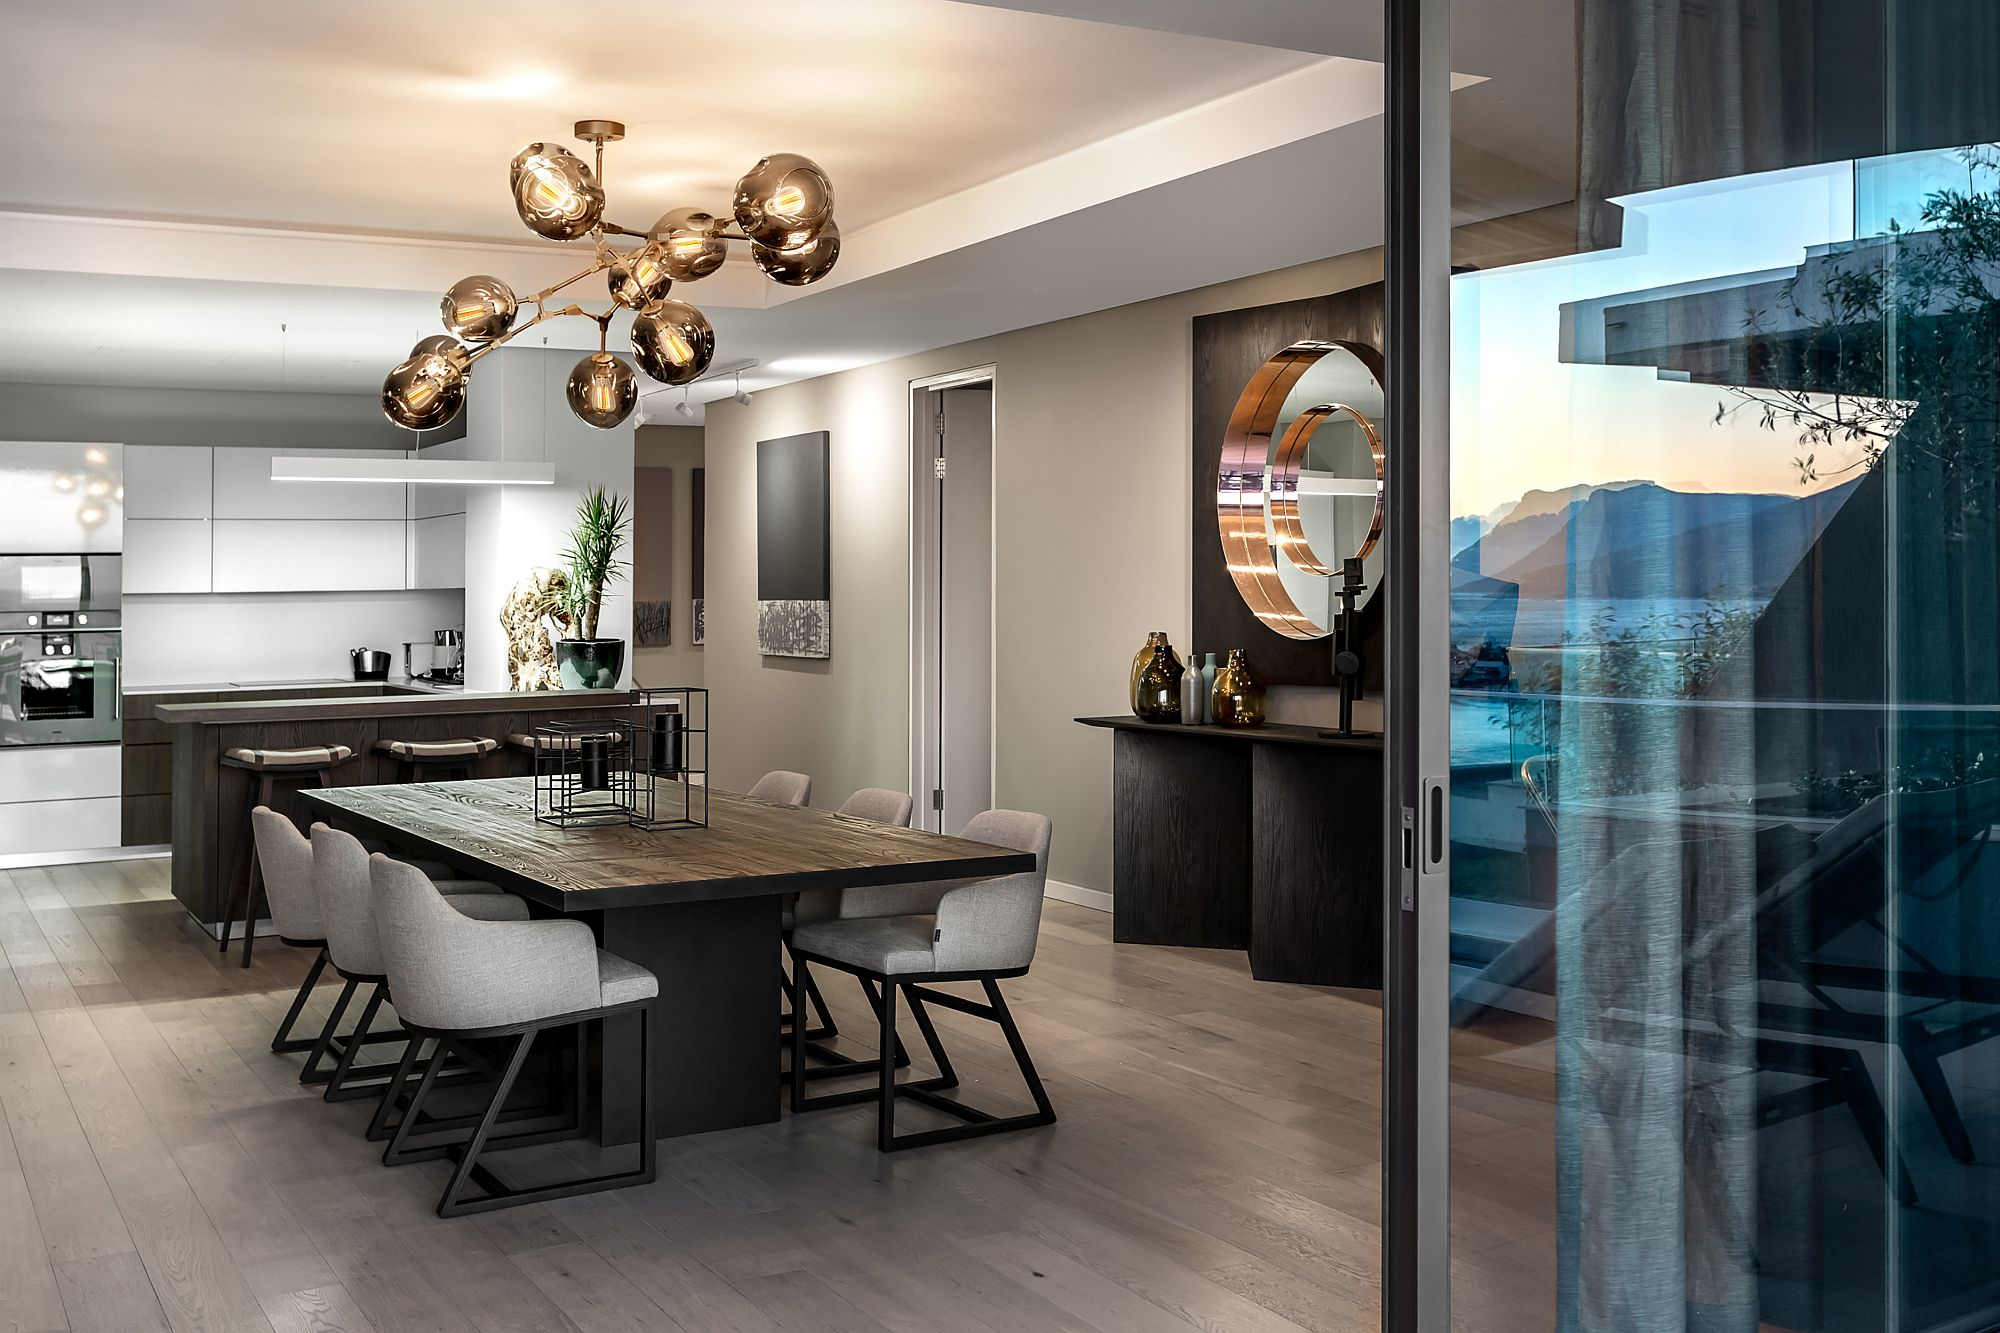 1563443575 858 quiet sophistication draped in the best of cape town stunning clifton 301 by okha - Quiet Sophistication Draped in the Best of Cape Town: Stunning Clifton 301 by OKHA